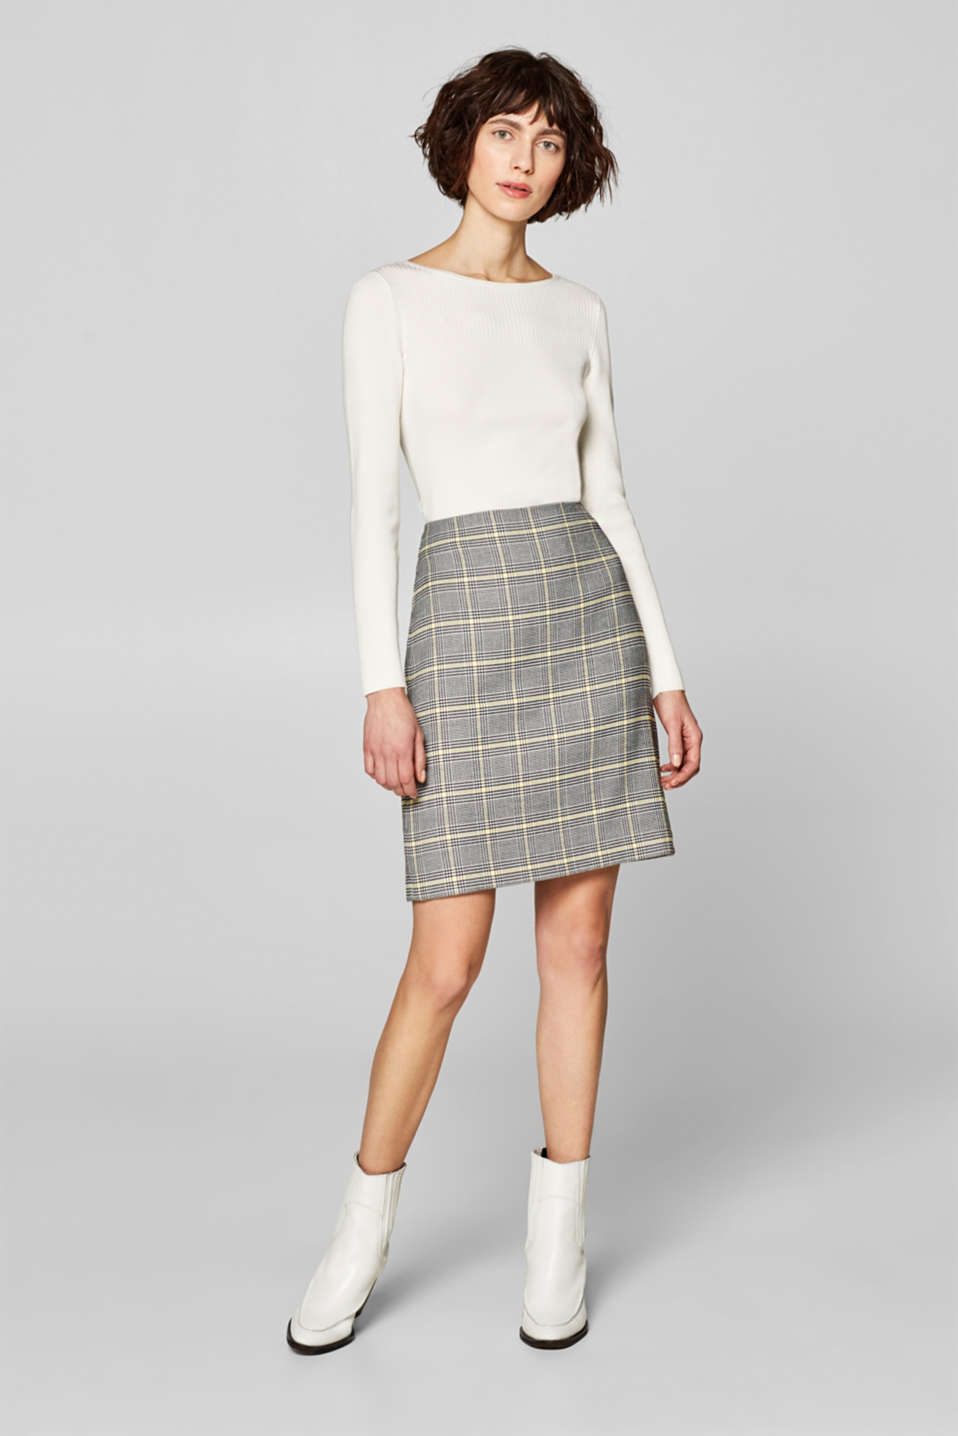 Esprit - Skirt with a houndstooth check pattern